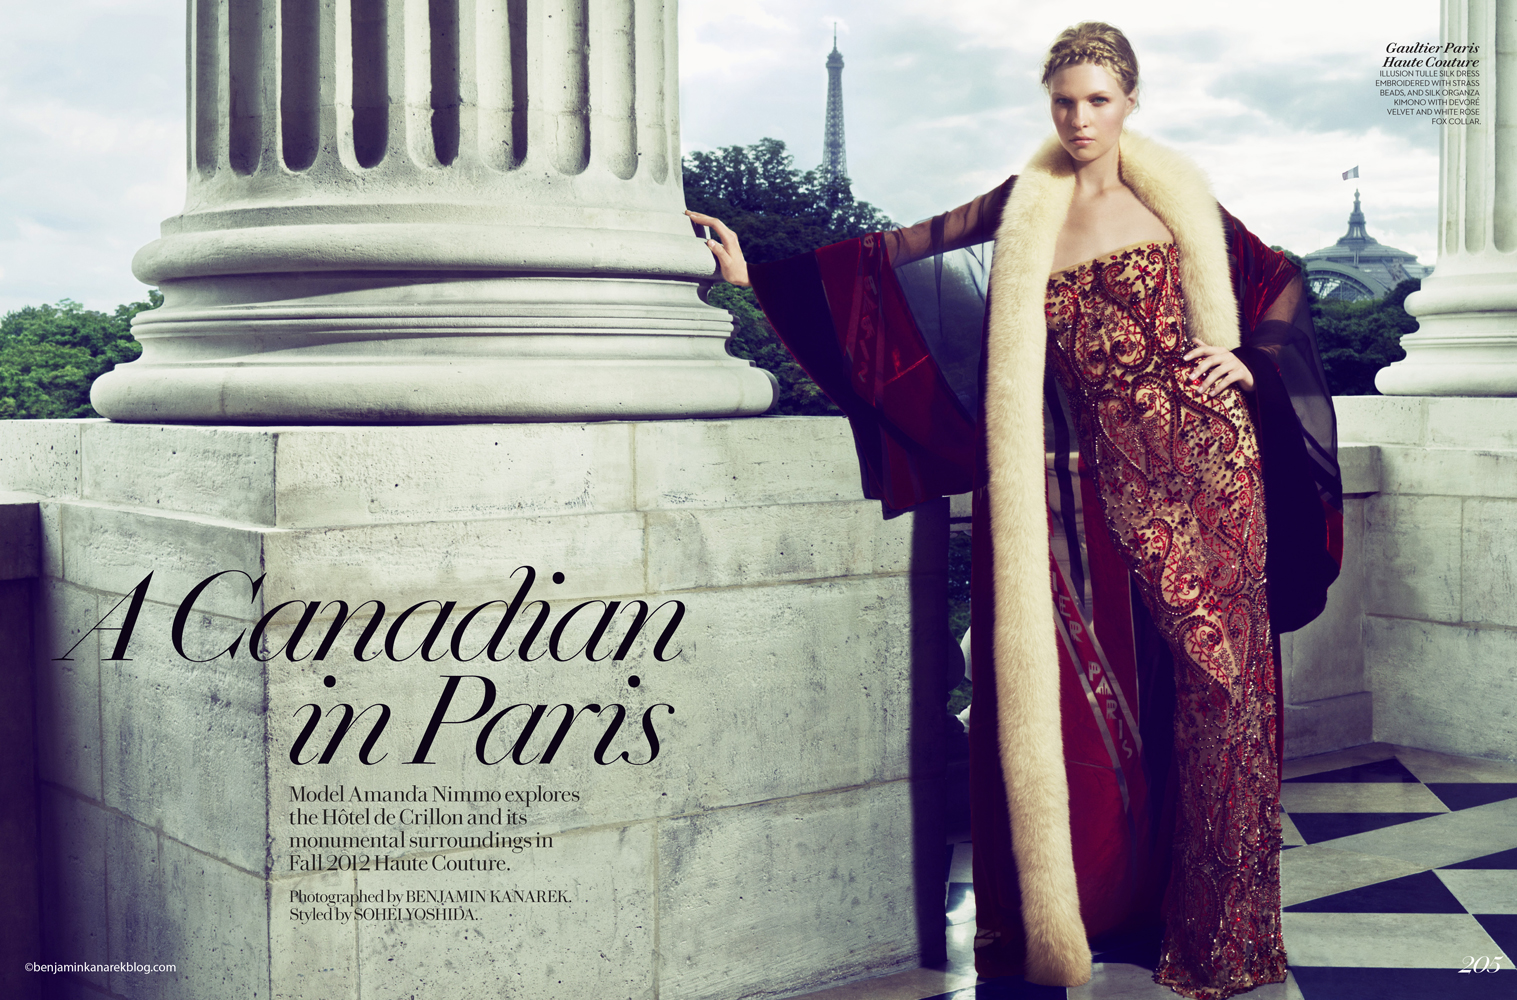 """A Canadian in Paris"" with Amanda Nimmo in Haute Couture for Fashion Magazine © Benjamin Kanarek"